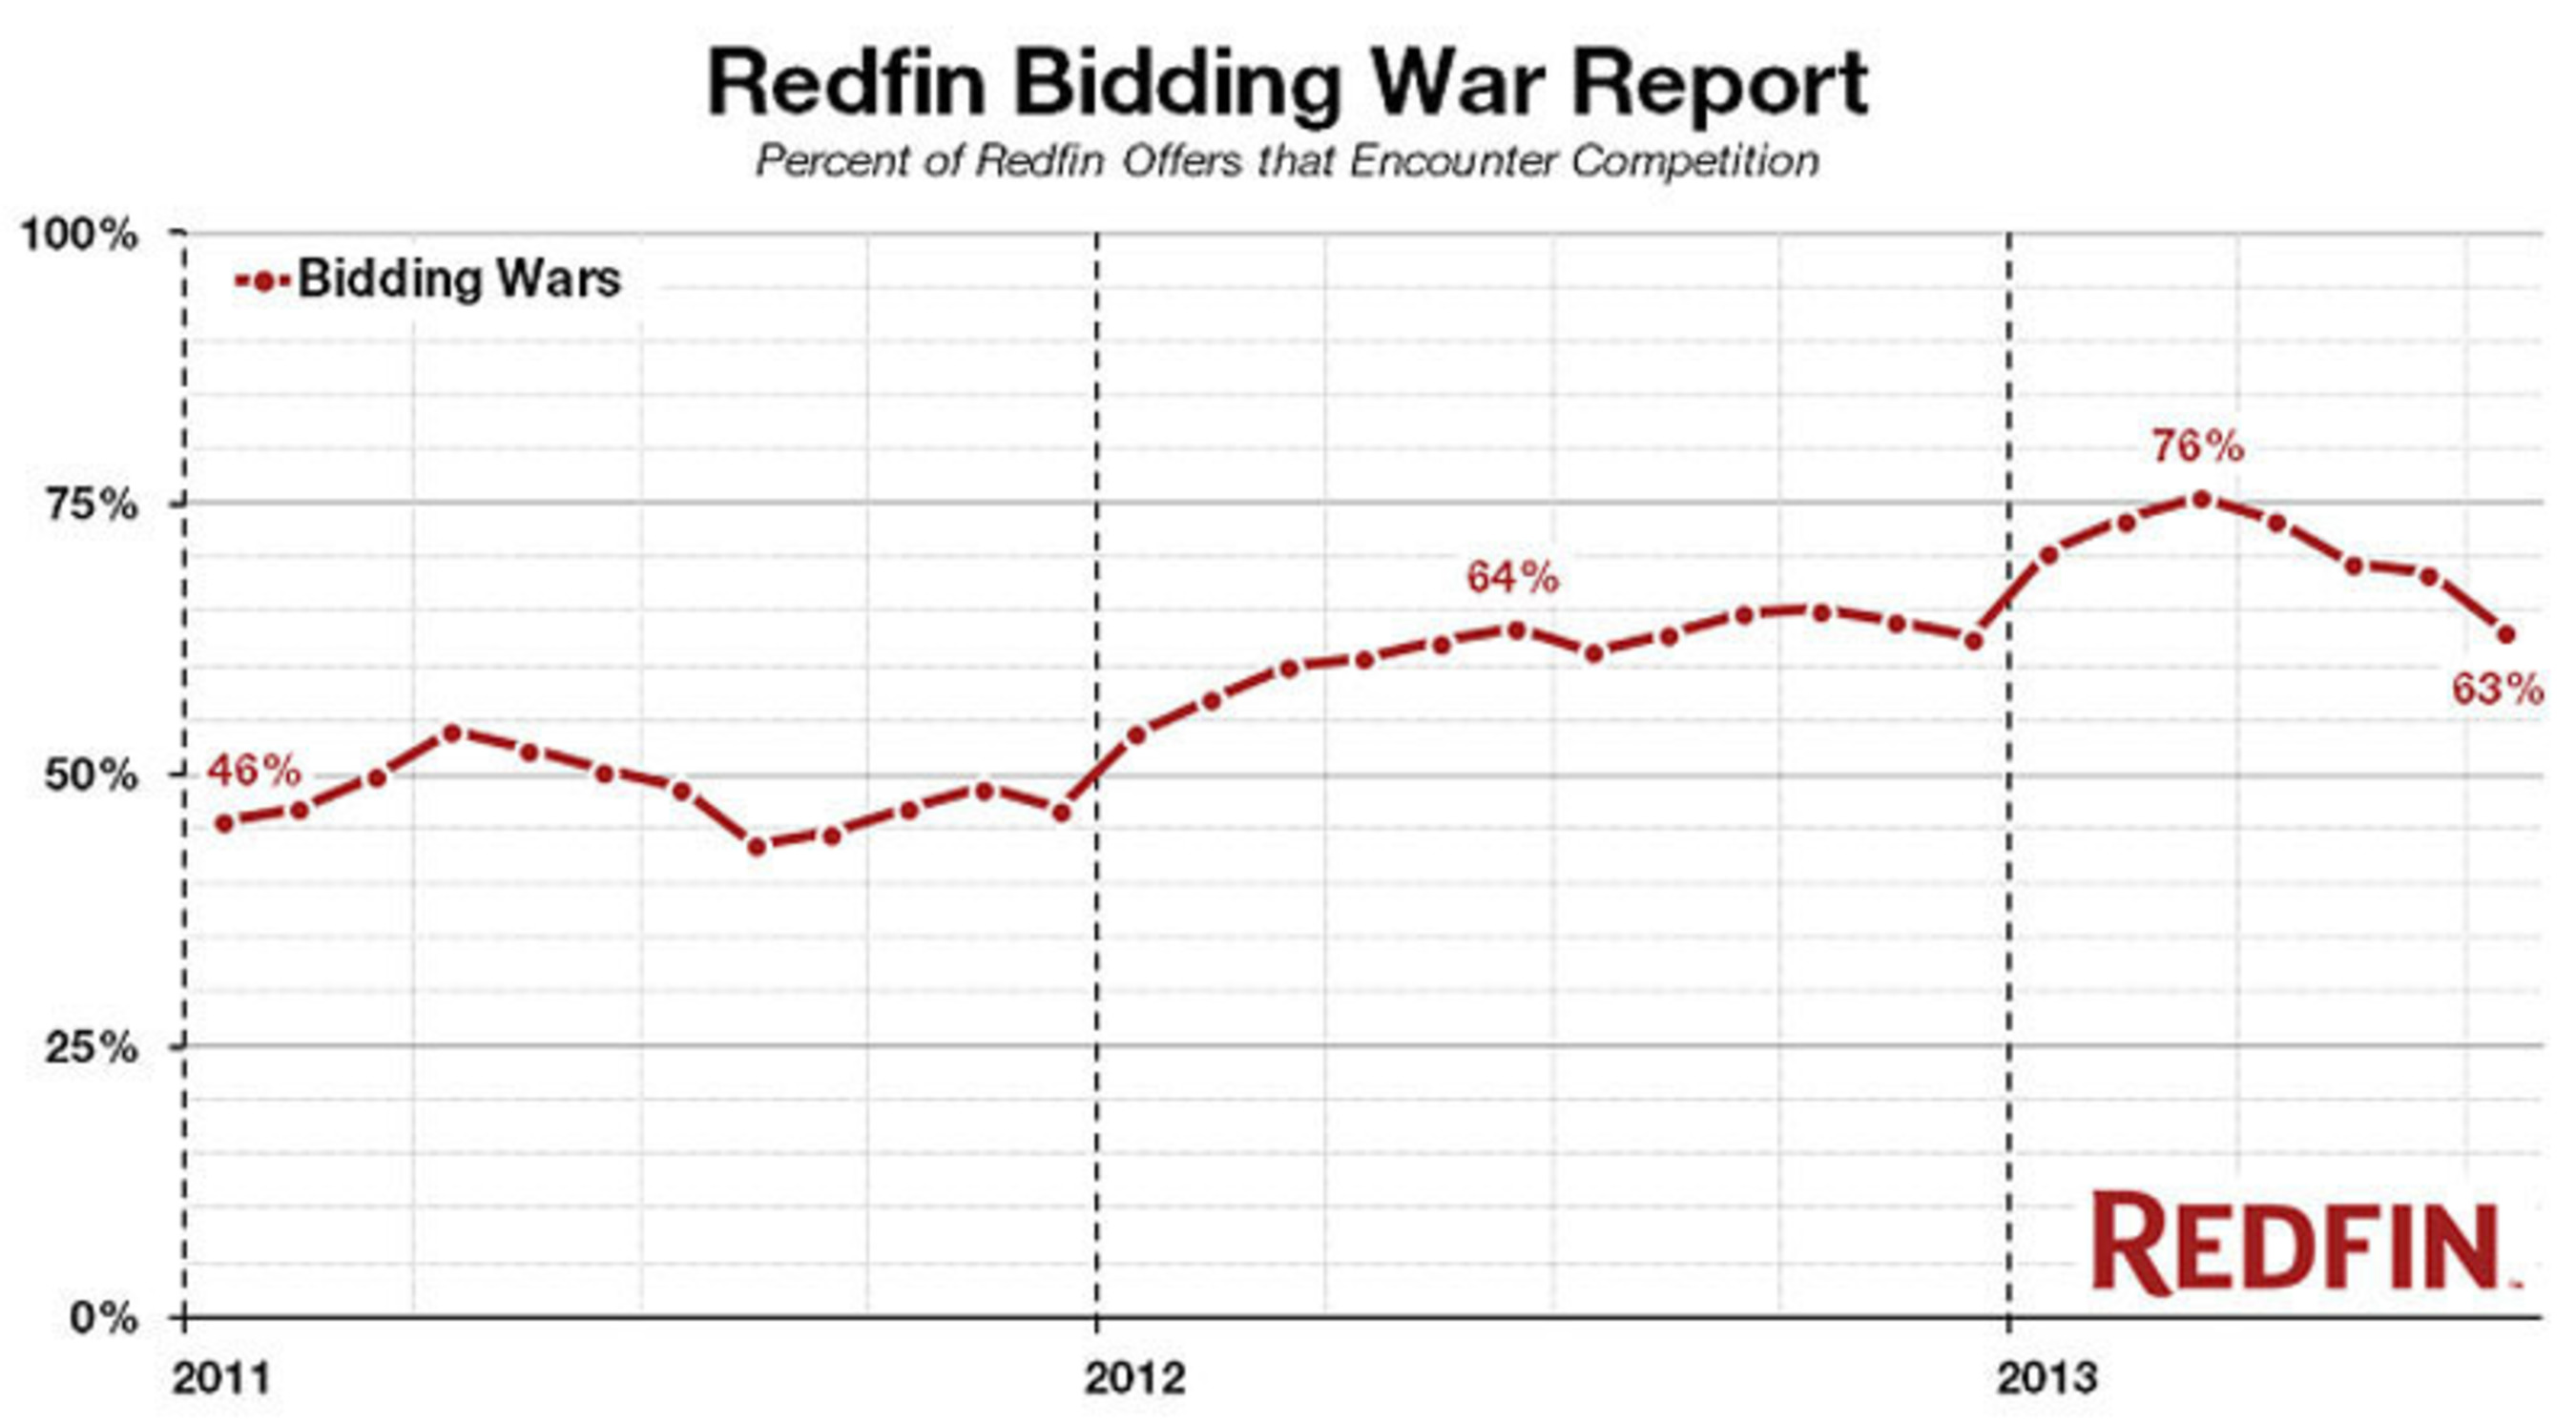 Real Estate Bidding Wars Continued to Tumble in July as Housing Market Rebalances, According to Redfin Report. (PRNewsFoto/Redfin) (PRNewsFoto/REDFIN)